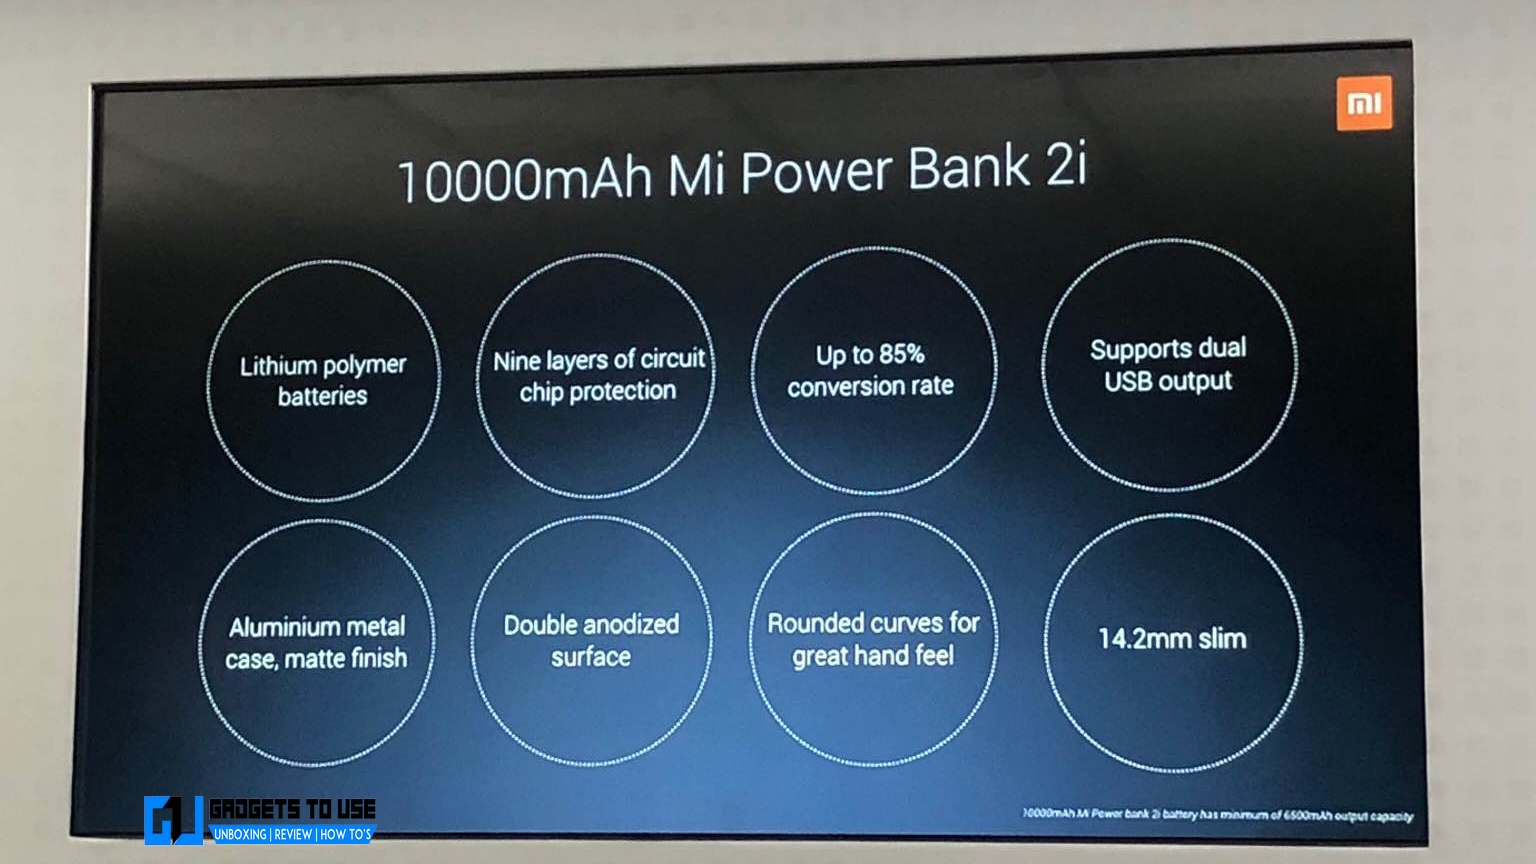 Mi Power Bank 2i 10000mAh & 20000mAh Launched In India - Made in India